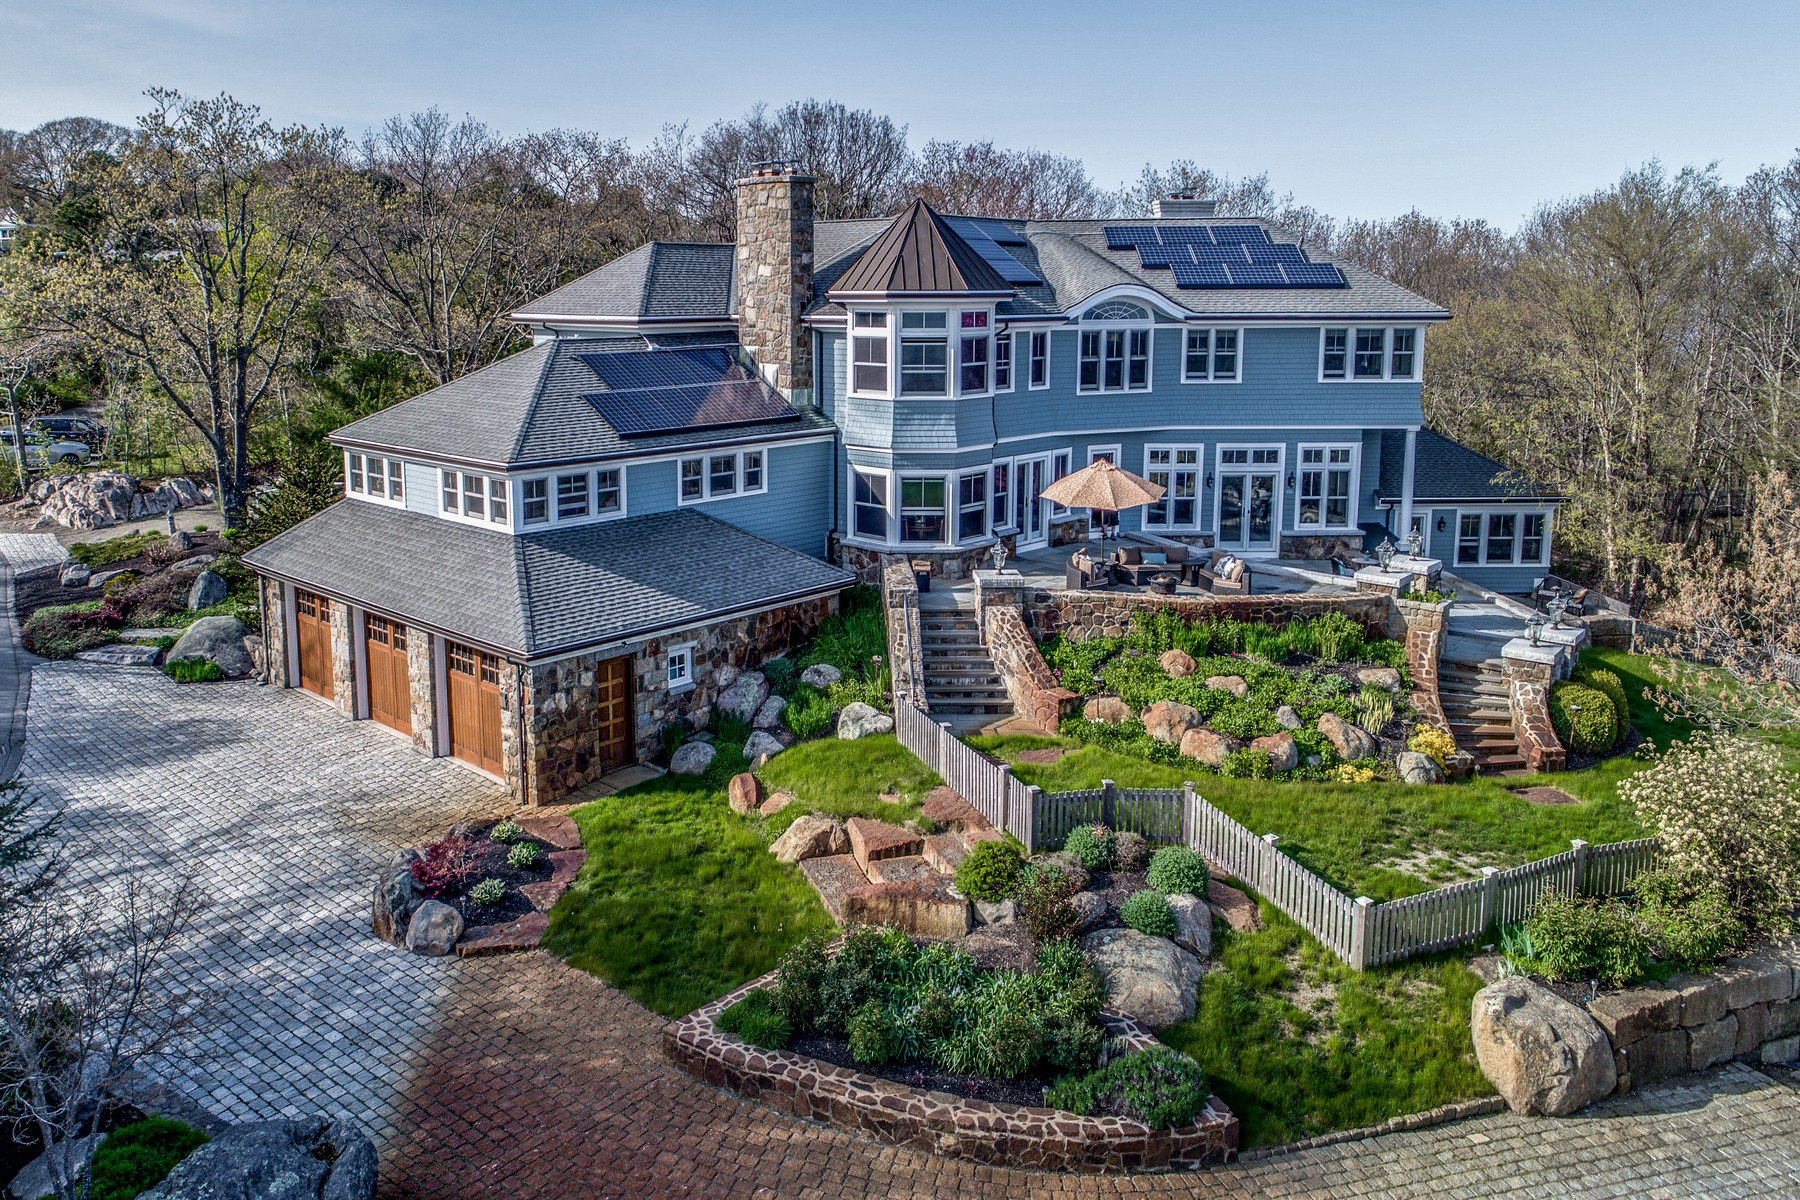 Casa Unifamiliar por un Venta en Sweeping Ocean Views 25 Penryn Way Rockport, Massachusetts 01966 Estados Unidos